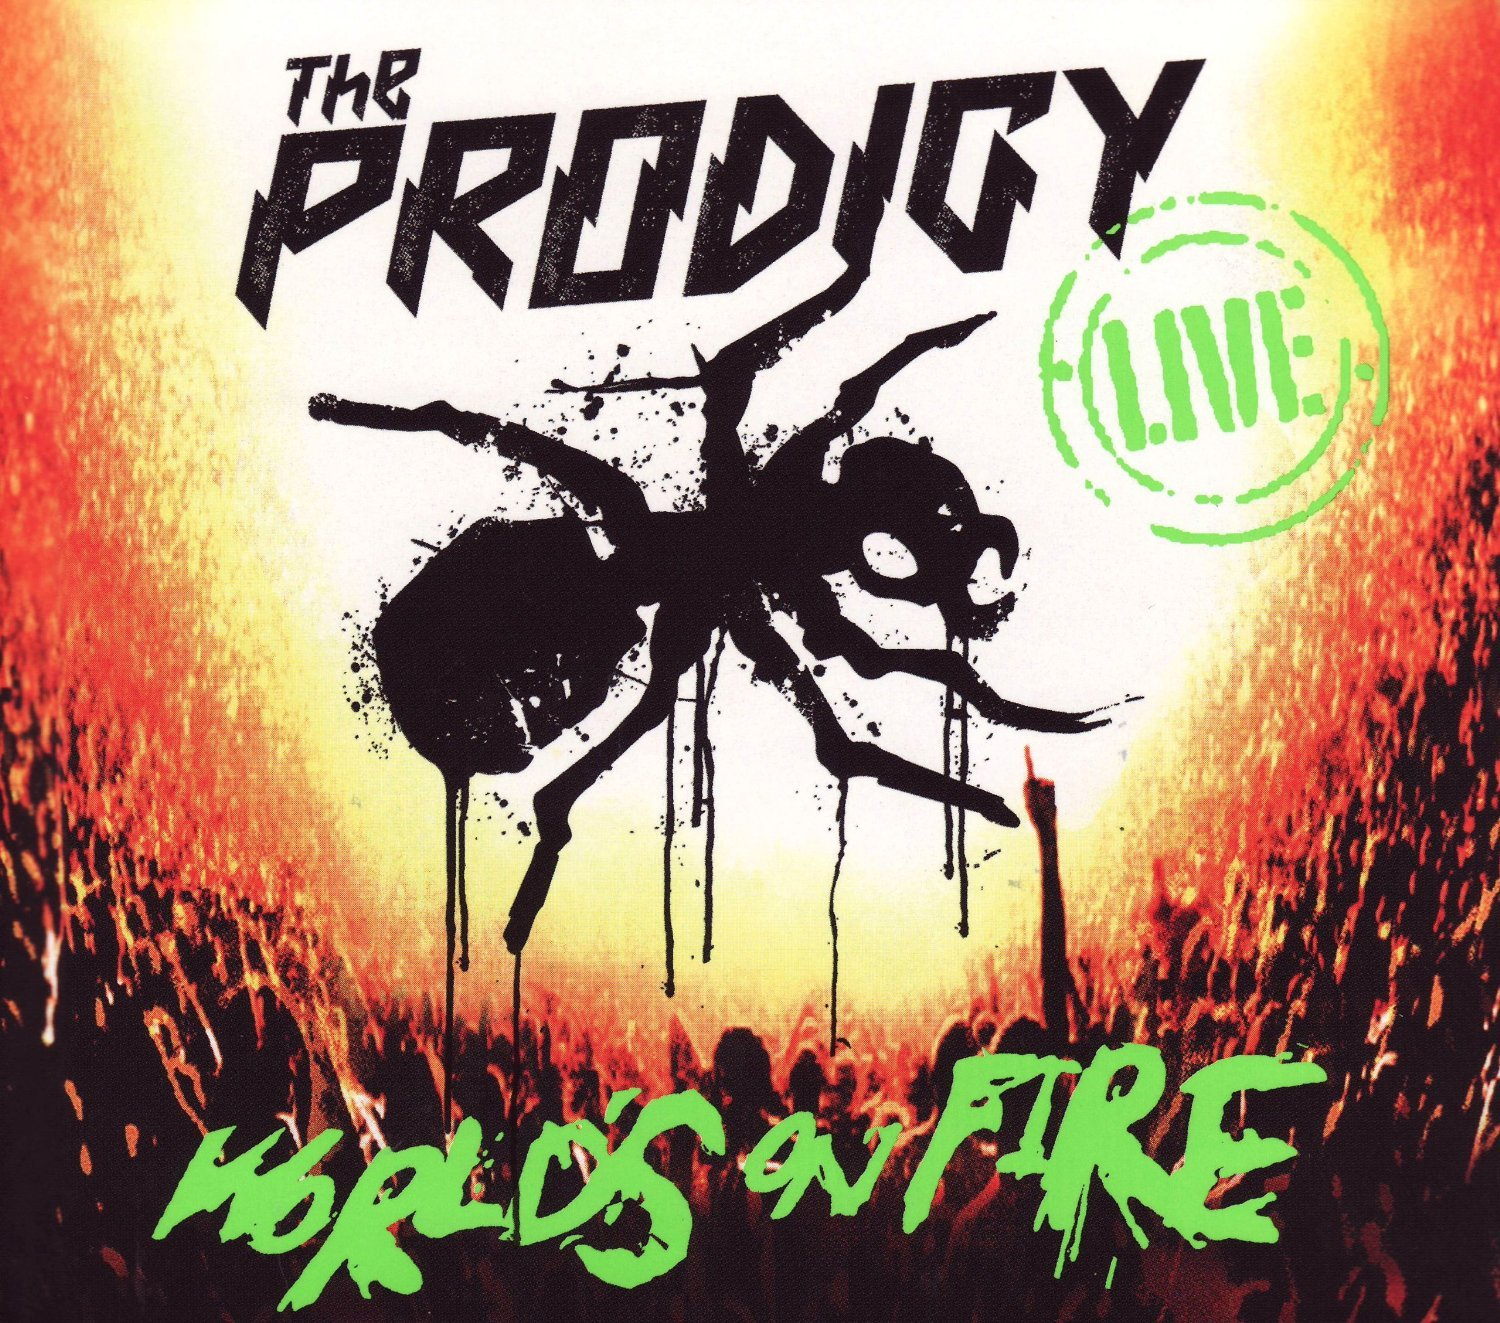 Live World's On Fire by Cooking Vinyl